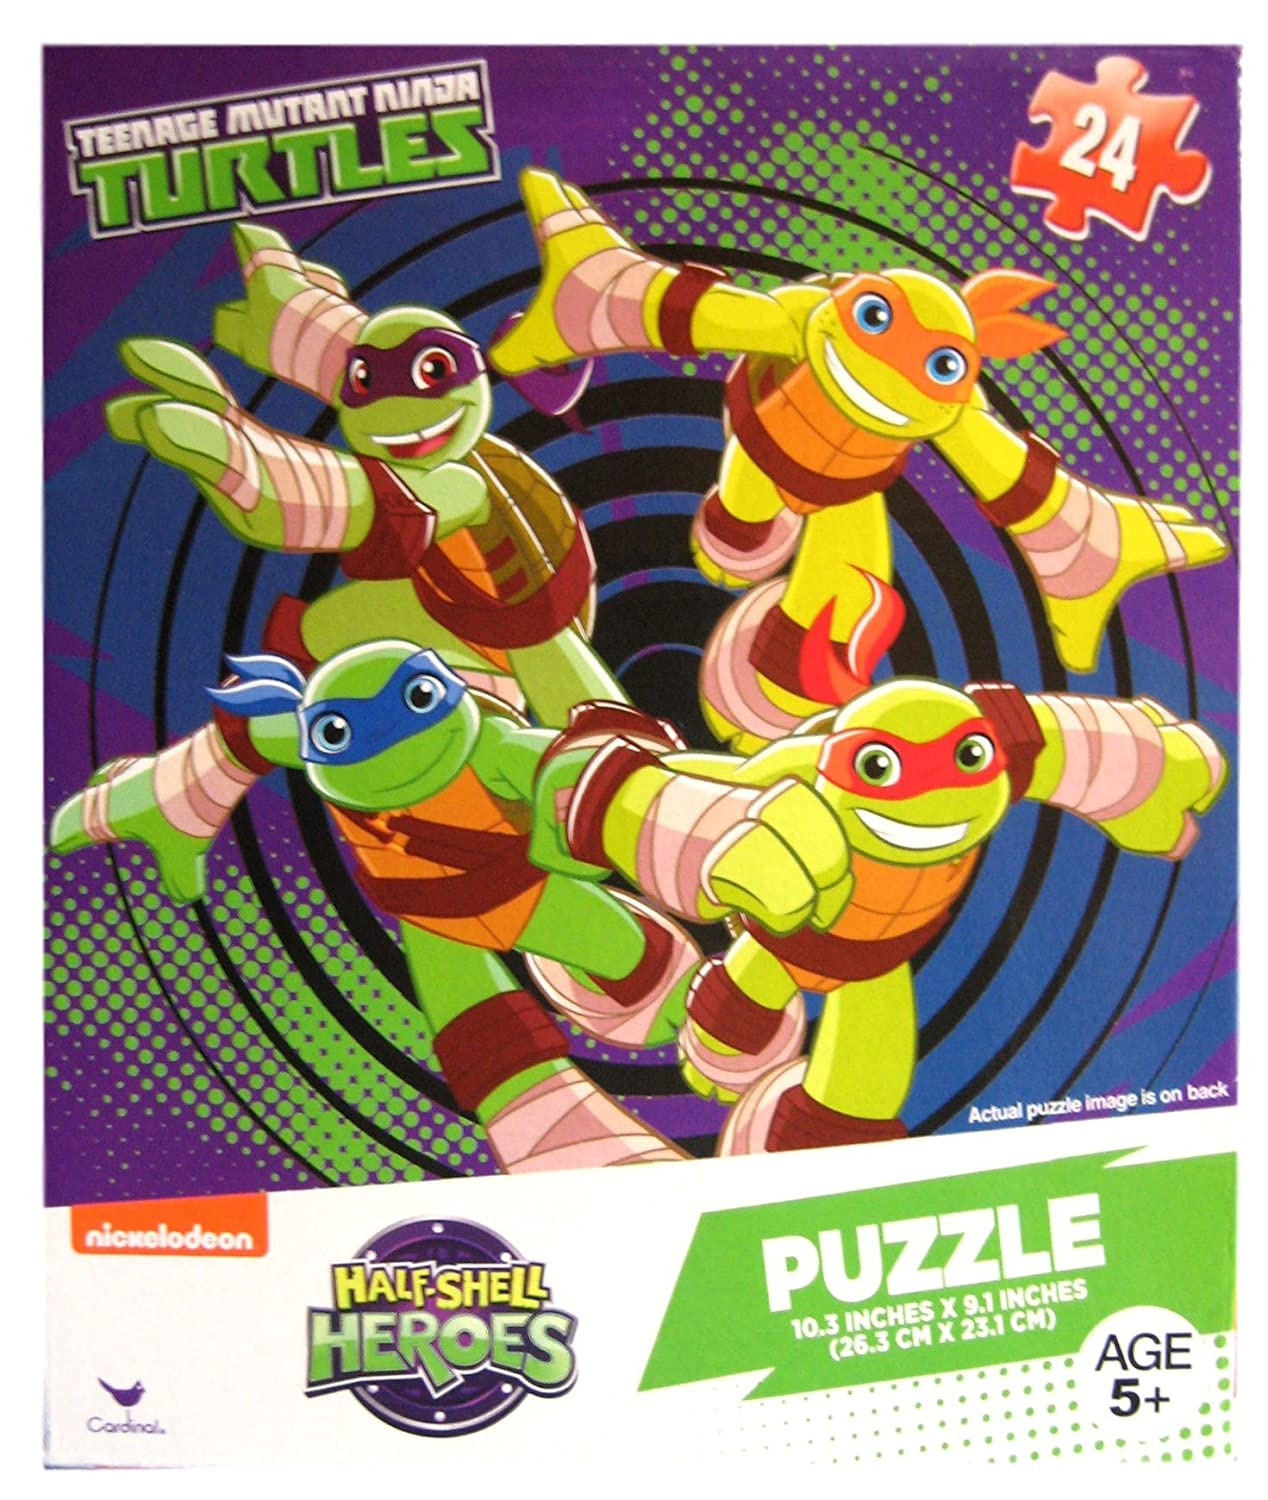 Amazon.com: Teenage Mutant Ninja Turtles Half Shell Heroes ...